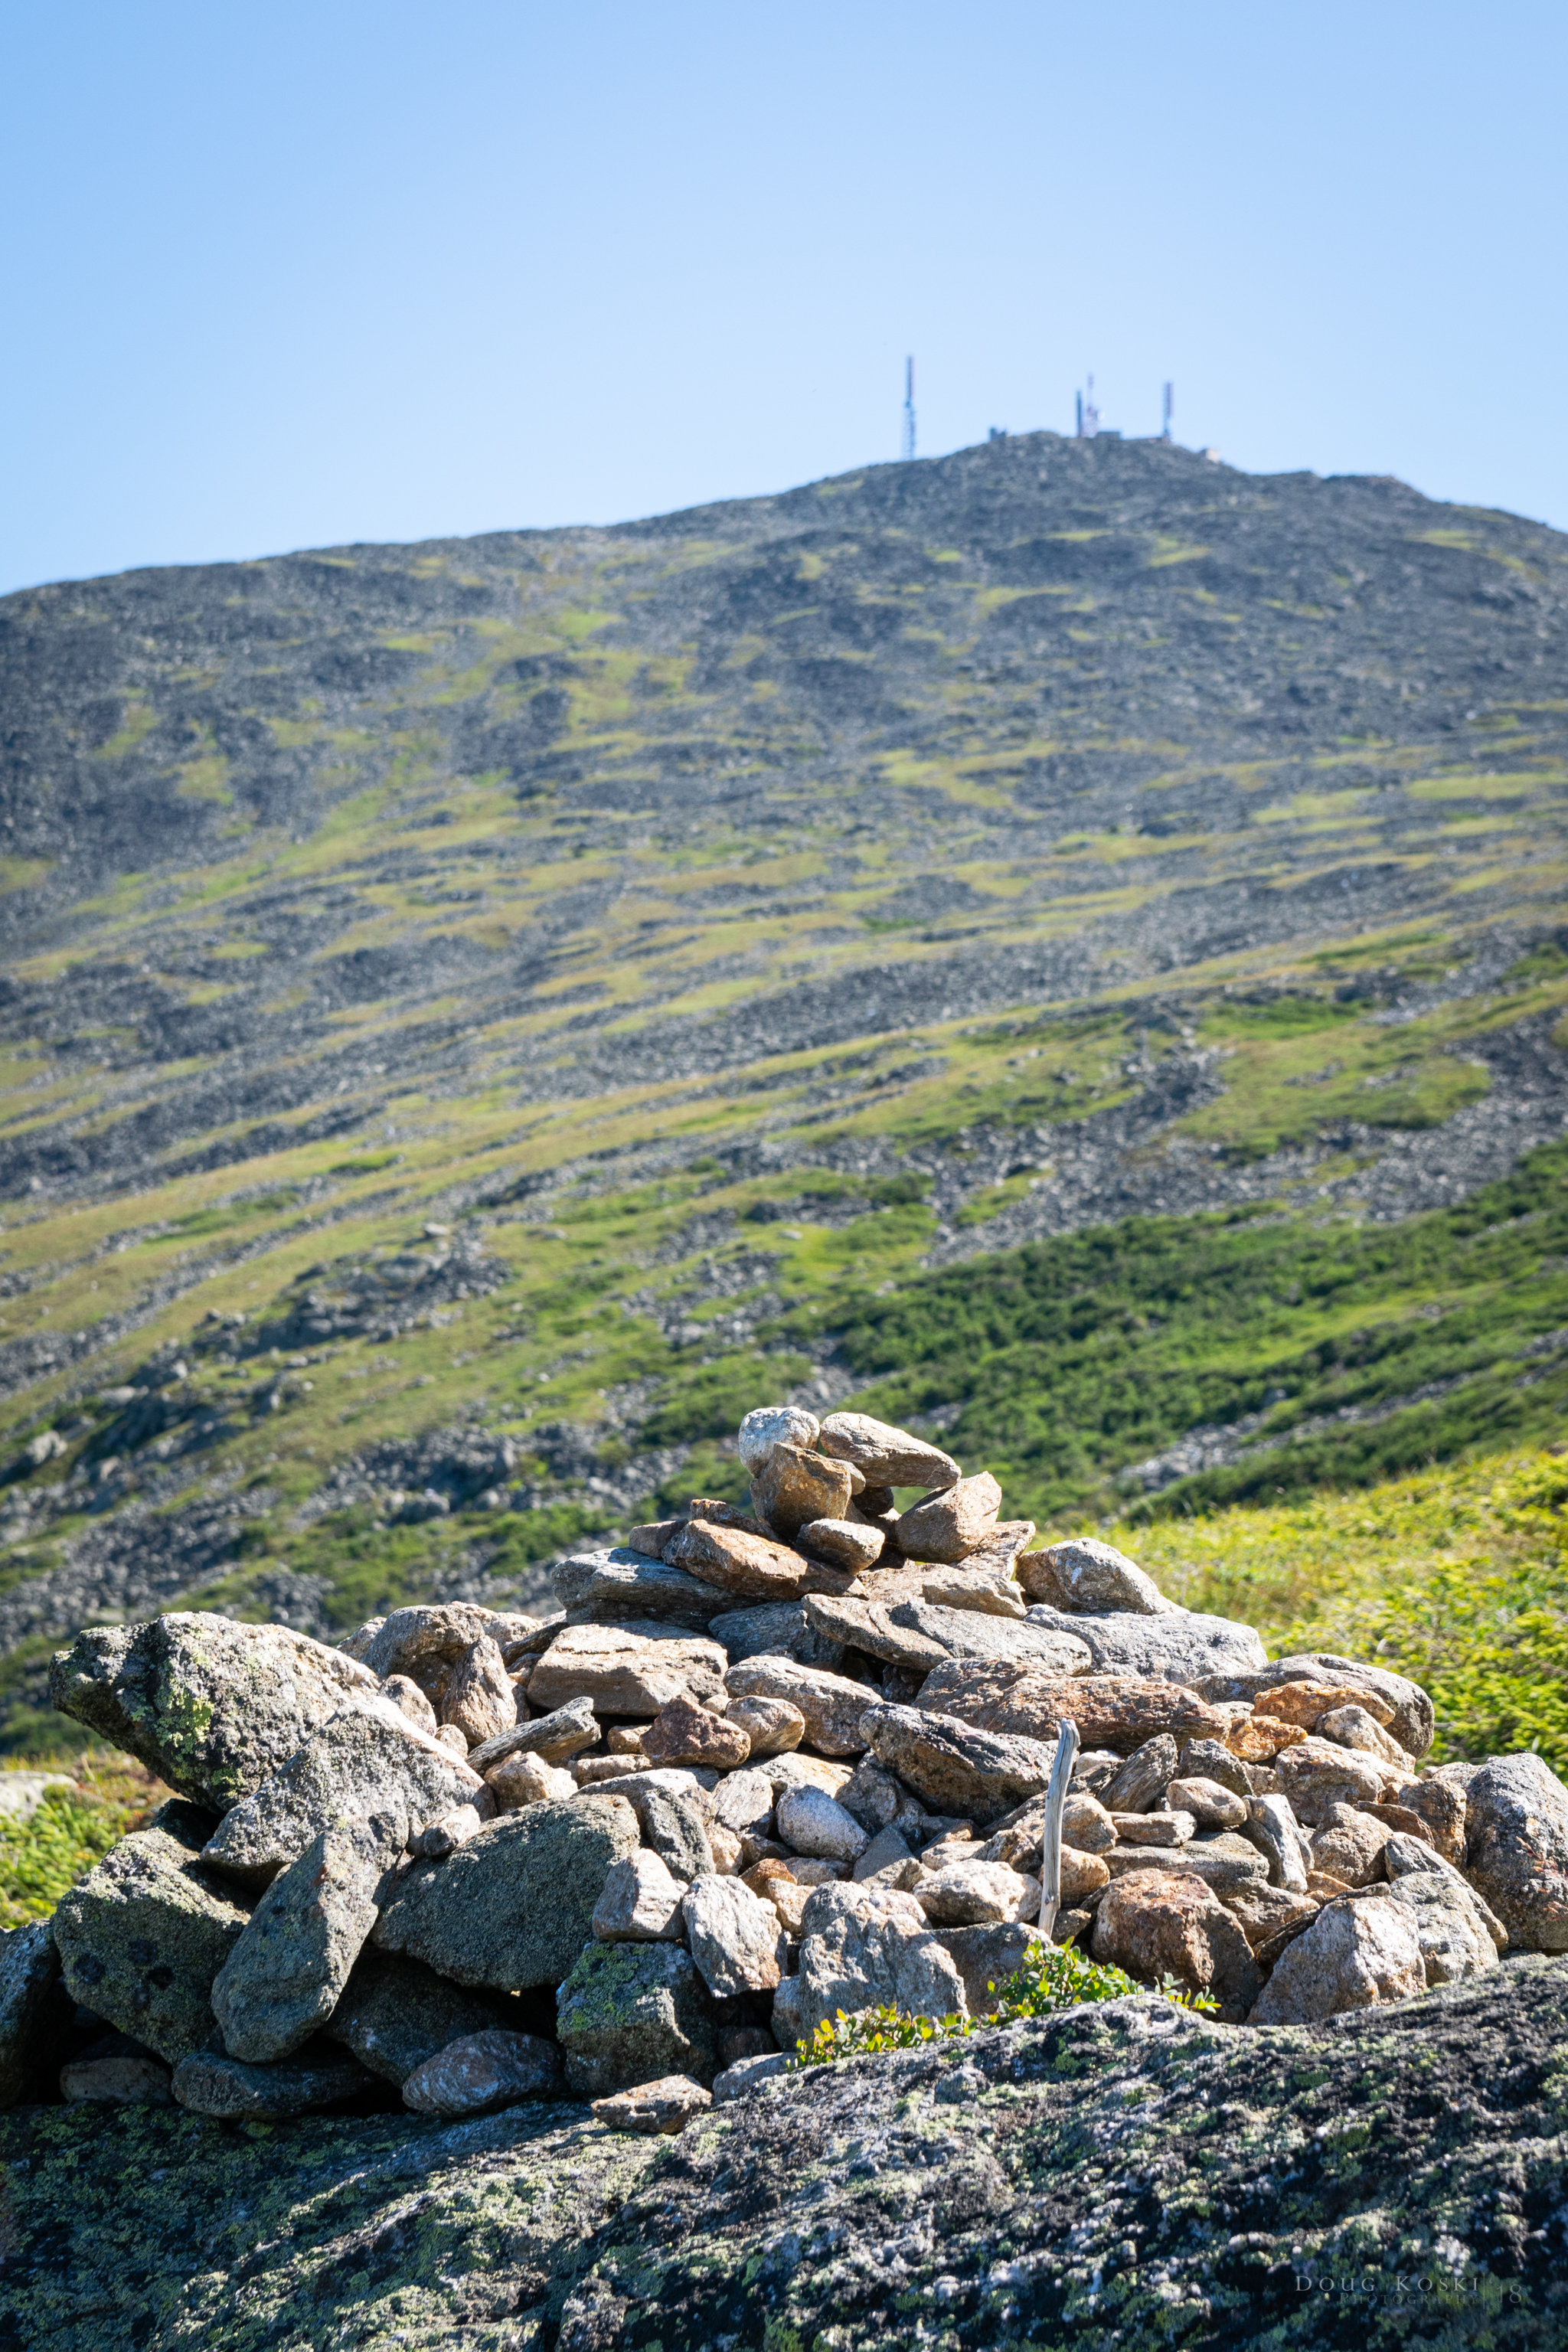 Even though the summit was well within sight,the Cairns will lead the way.